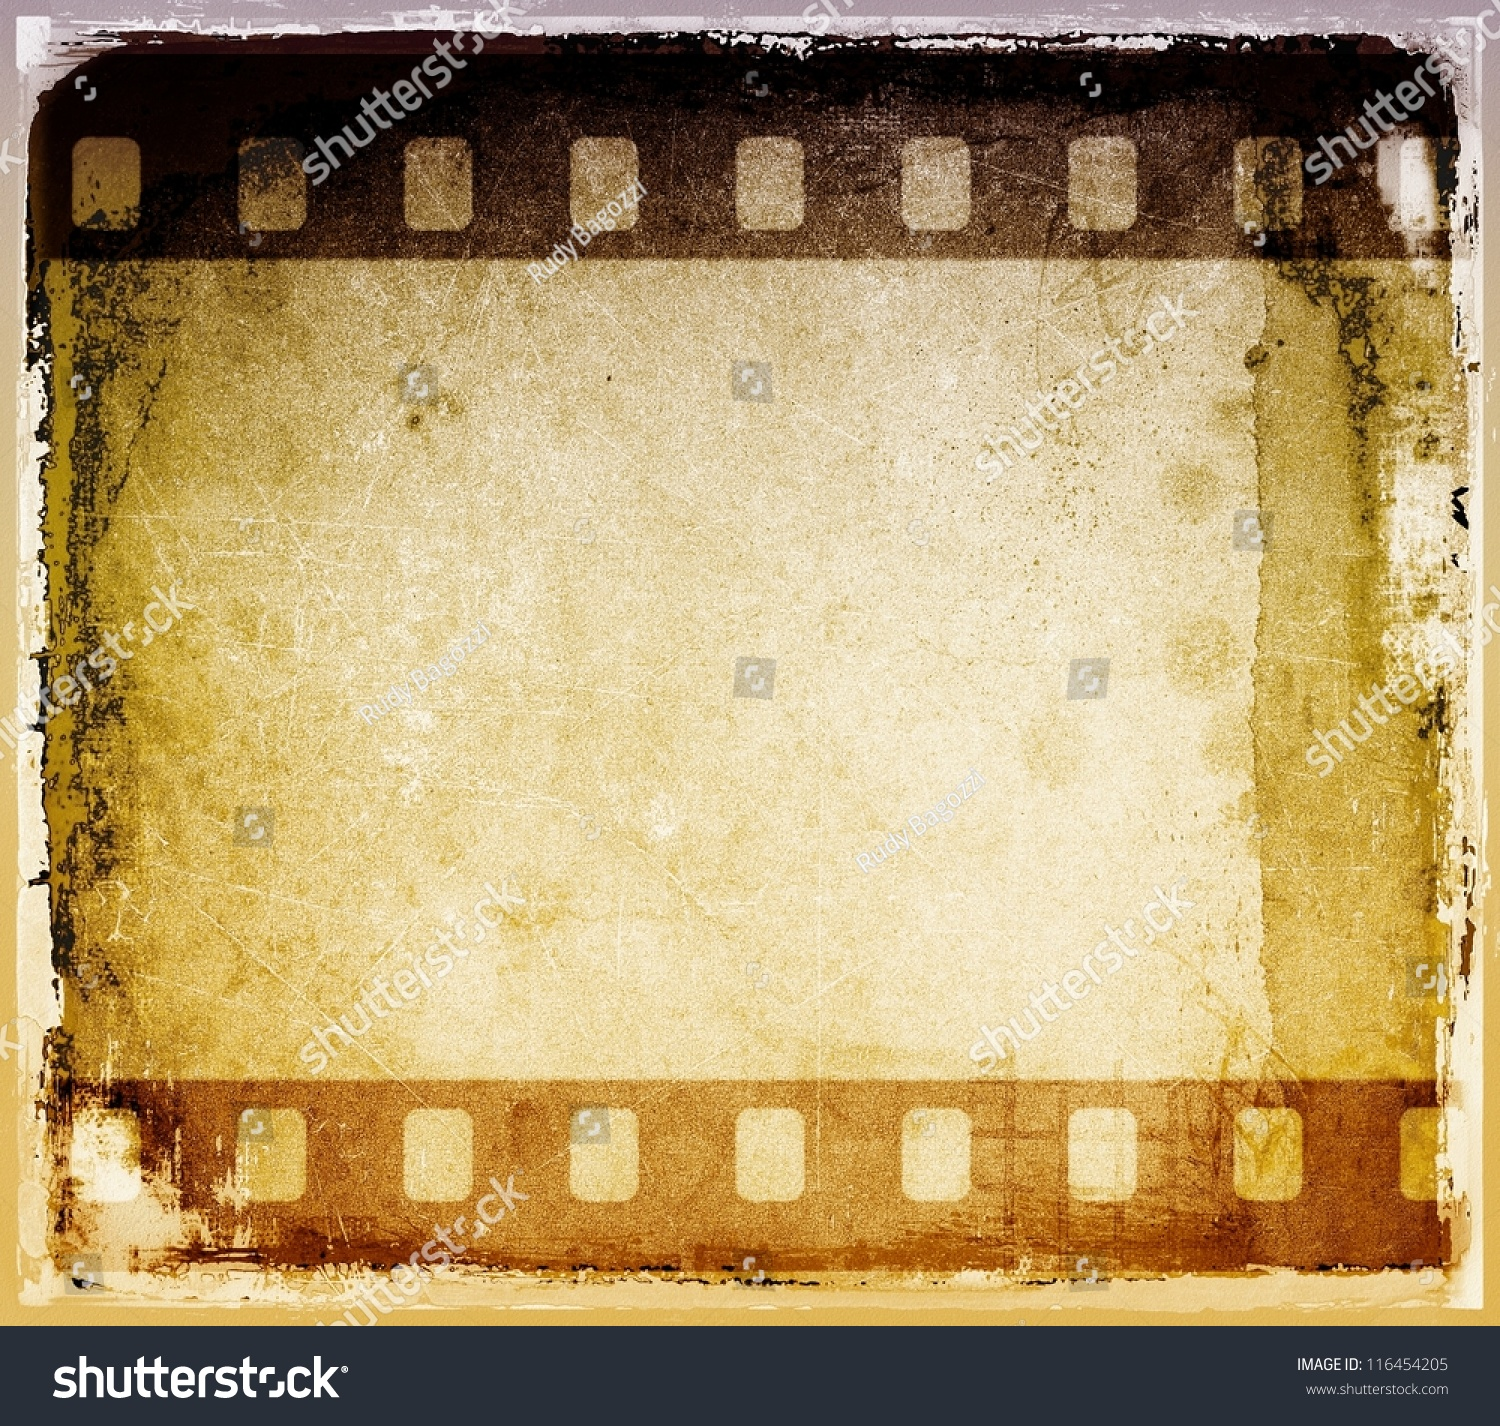 grunge film strip frame